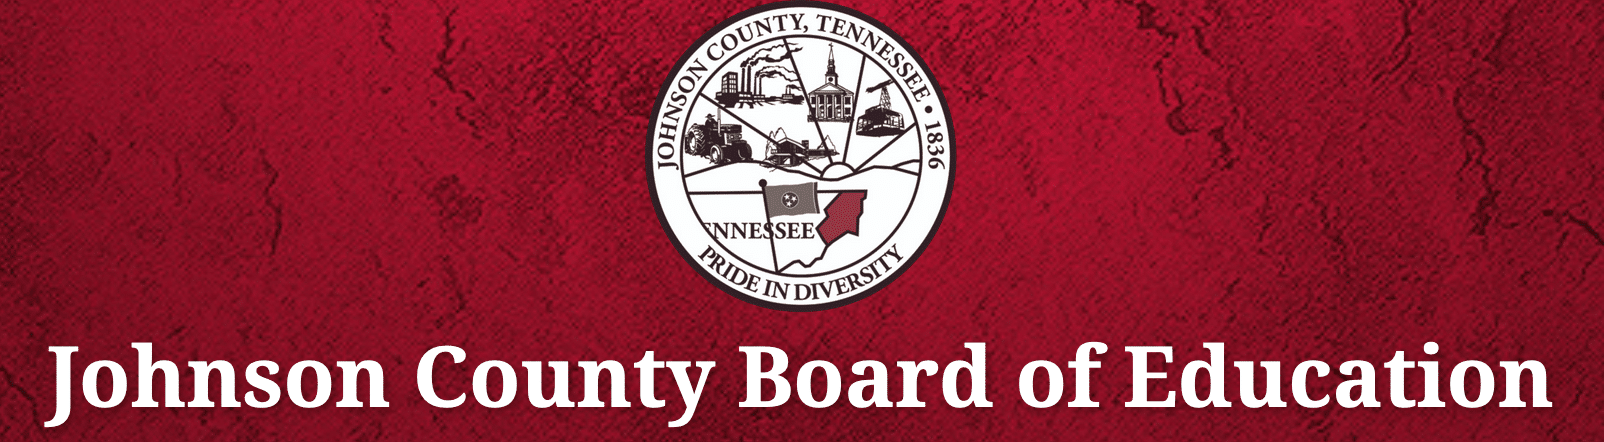 Johnson County TN Schools closed Oct 5th-9th due to COVID difficulties